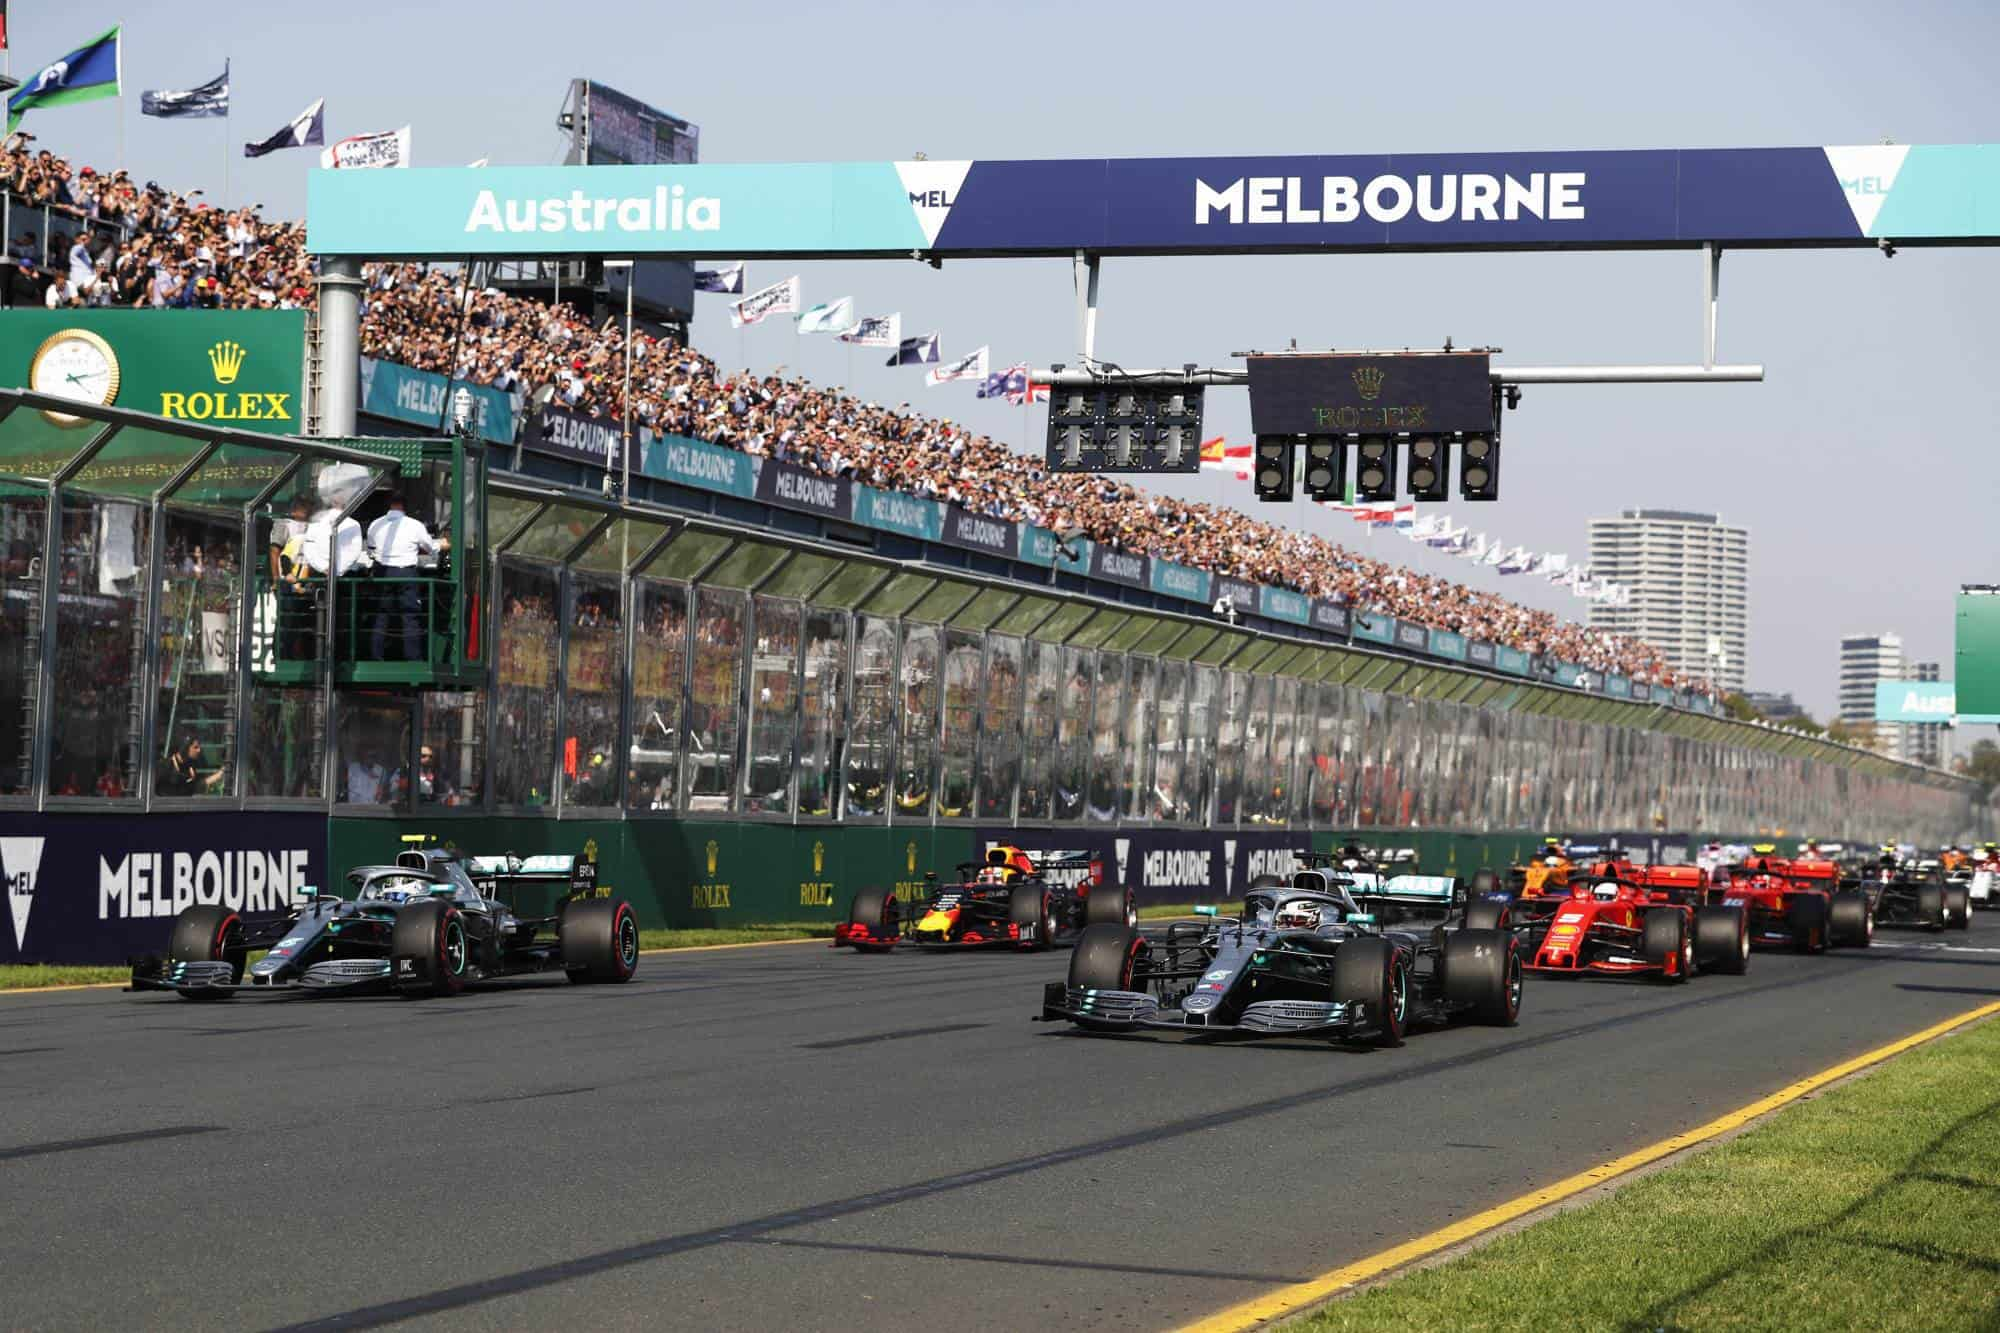 Australian GP F1 2019 start Photo Daimler Edited by MAXF1net